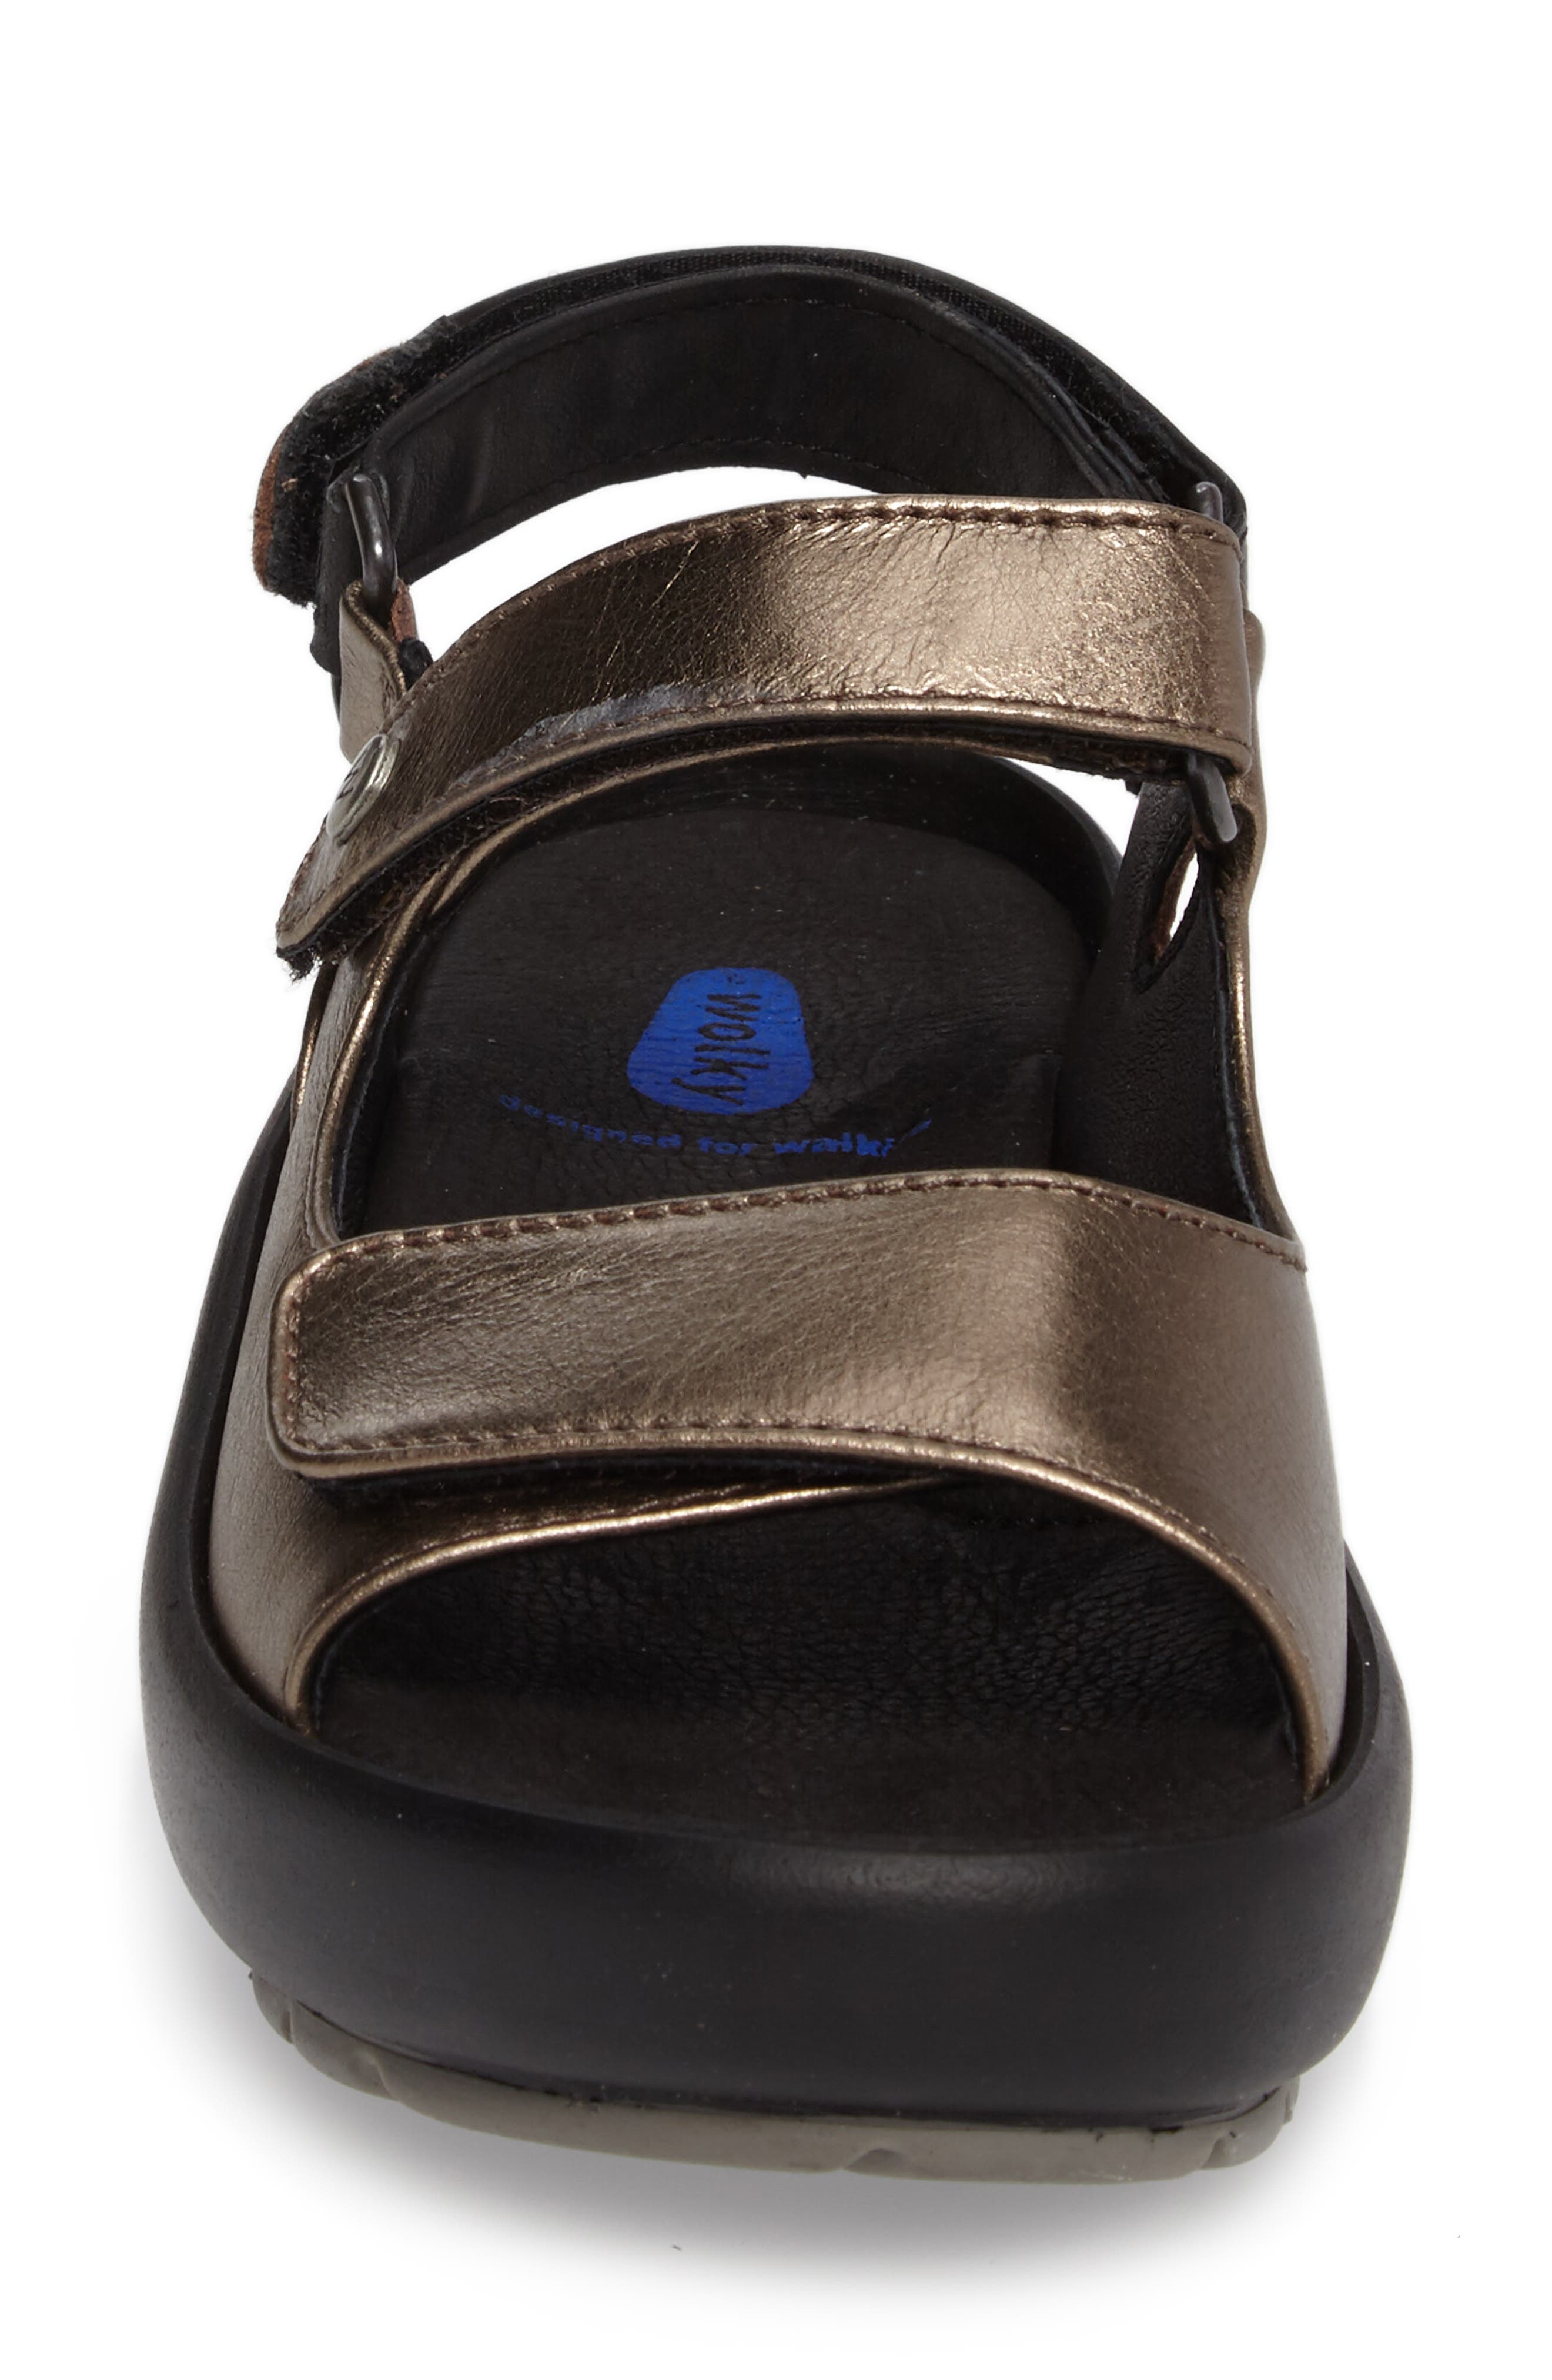 Rio Sandal,                             Alternate thumbnail 4, color,                             Bronze Metallic Leather